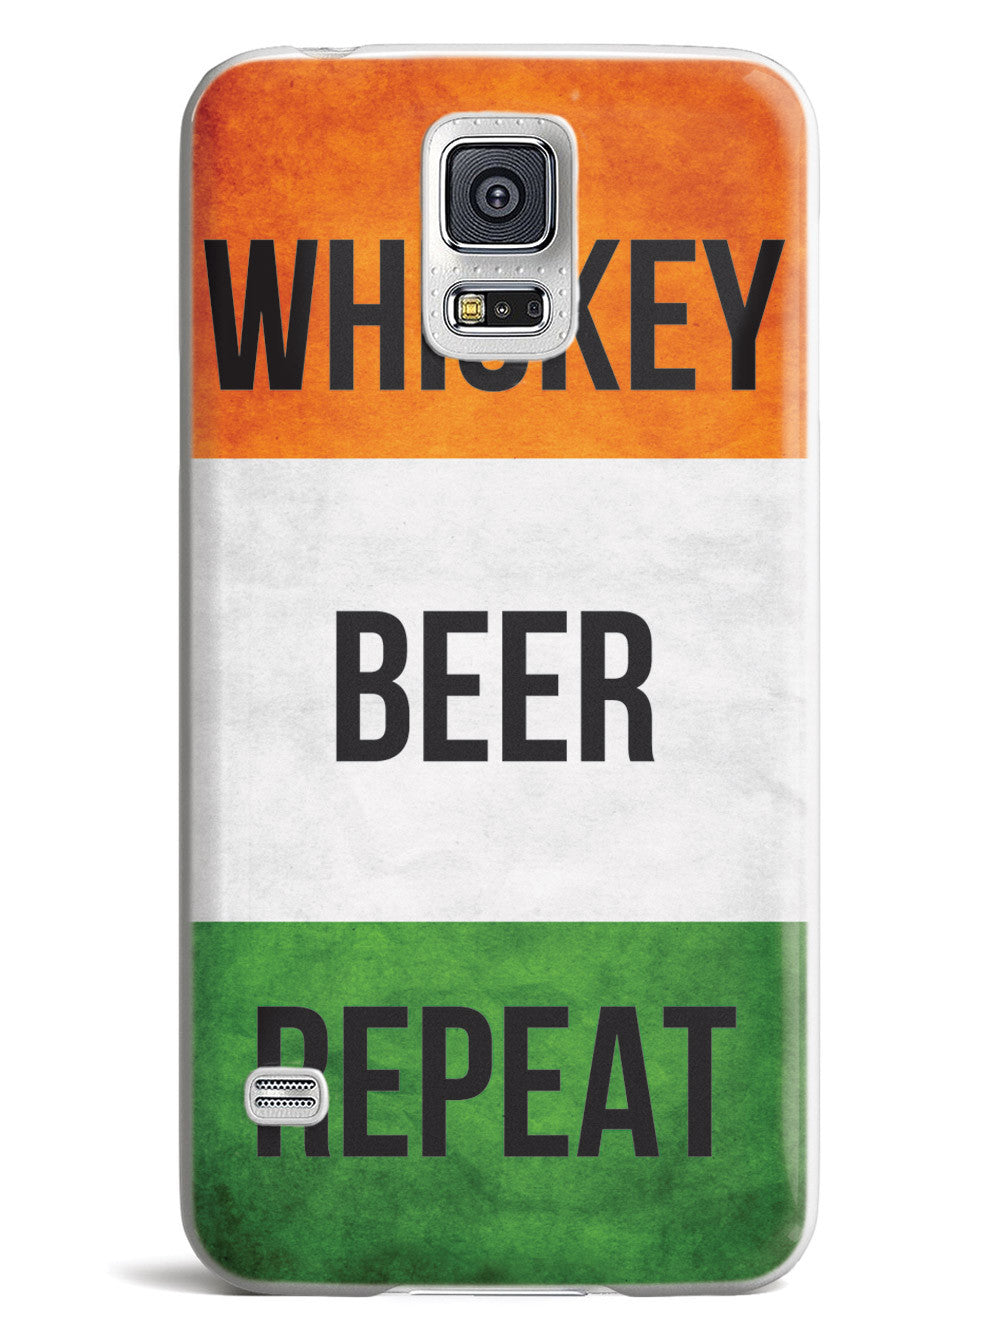 Whiskey Beer Repeat - Irish Flag Case